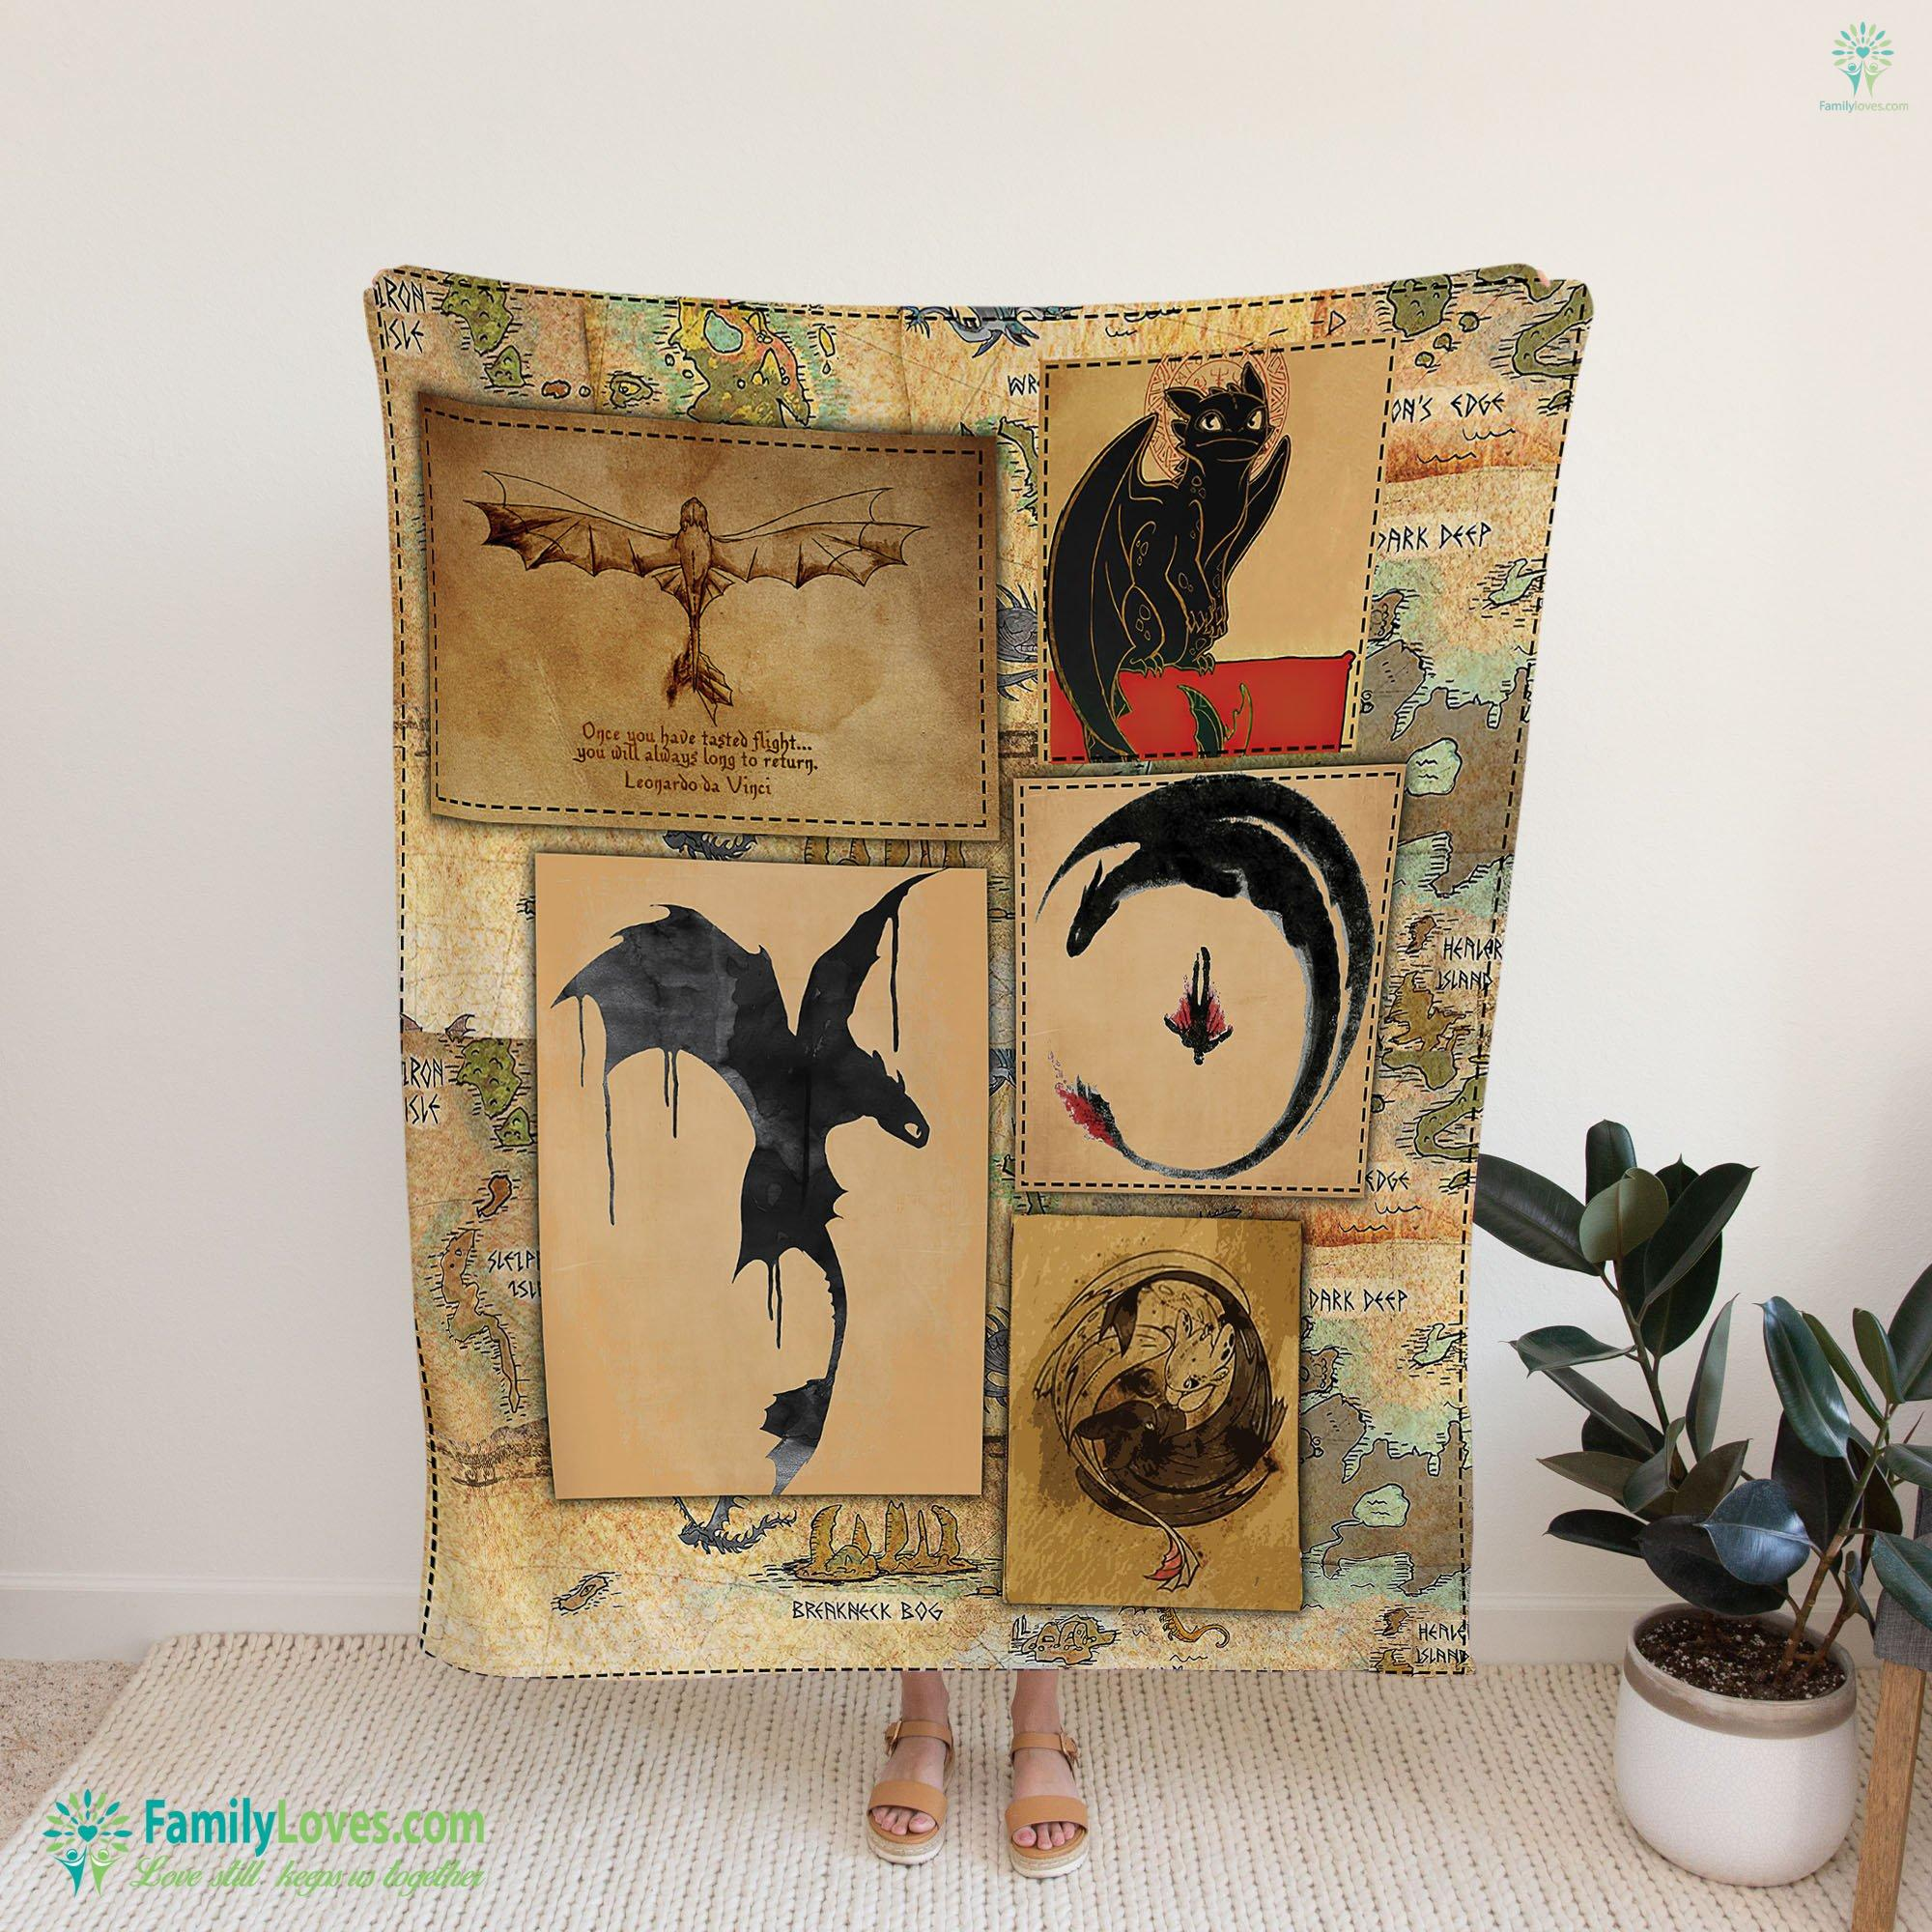 Vintage Vinking Dragon Map How To Train Your Dragon Blanket 4 Familyloves.com